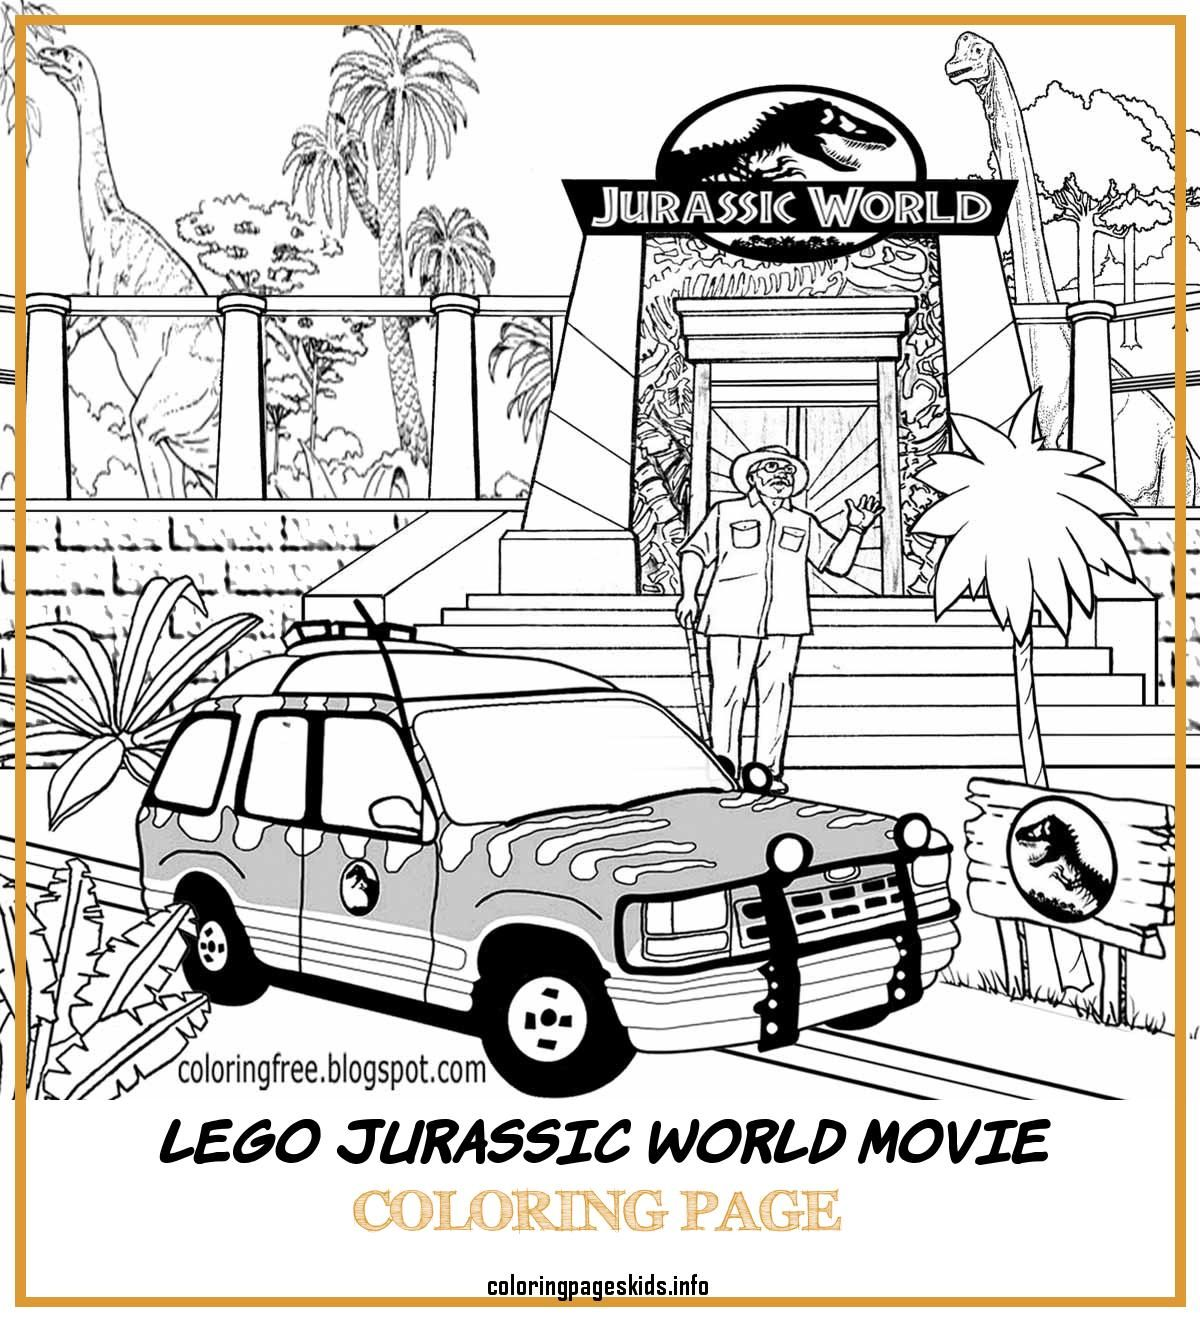 4 Lego Jurassic World Movie Coloring Page In 2020 Lego Jurassic World Movie Jurassic World Movie Lego Jurassic World